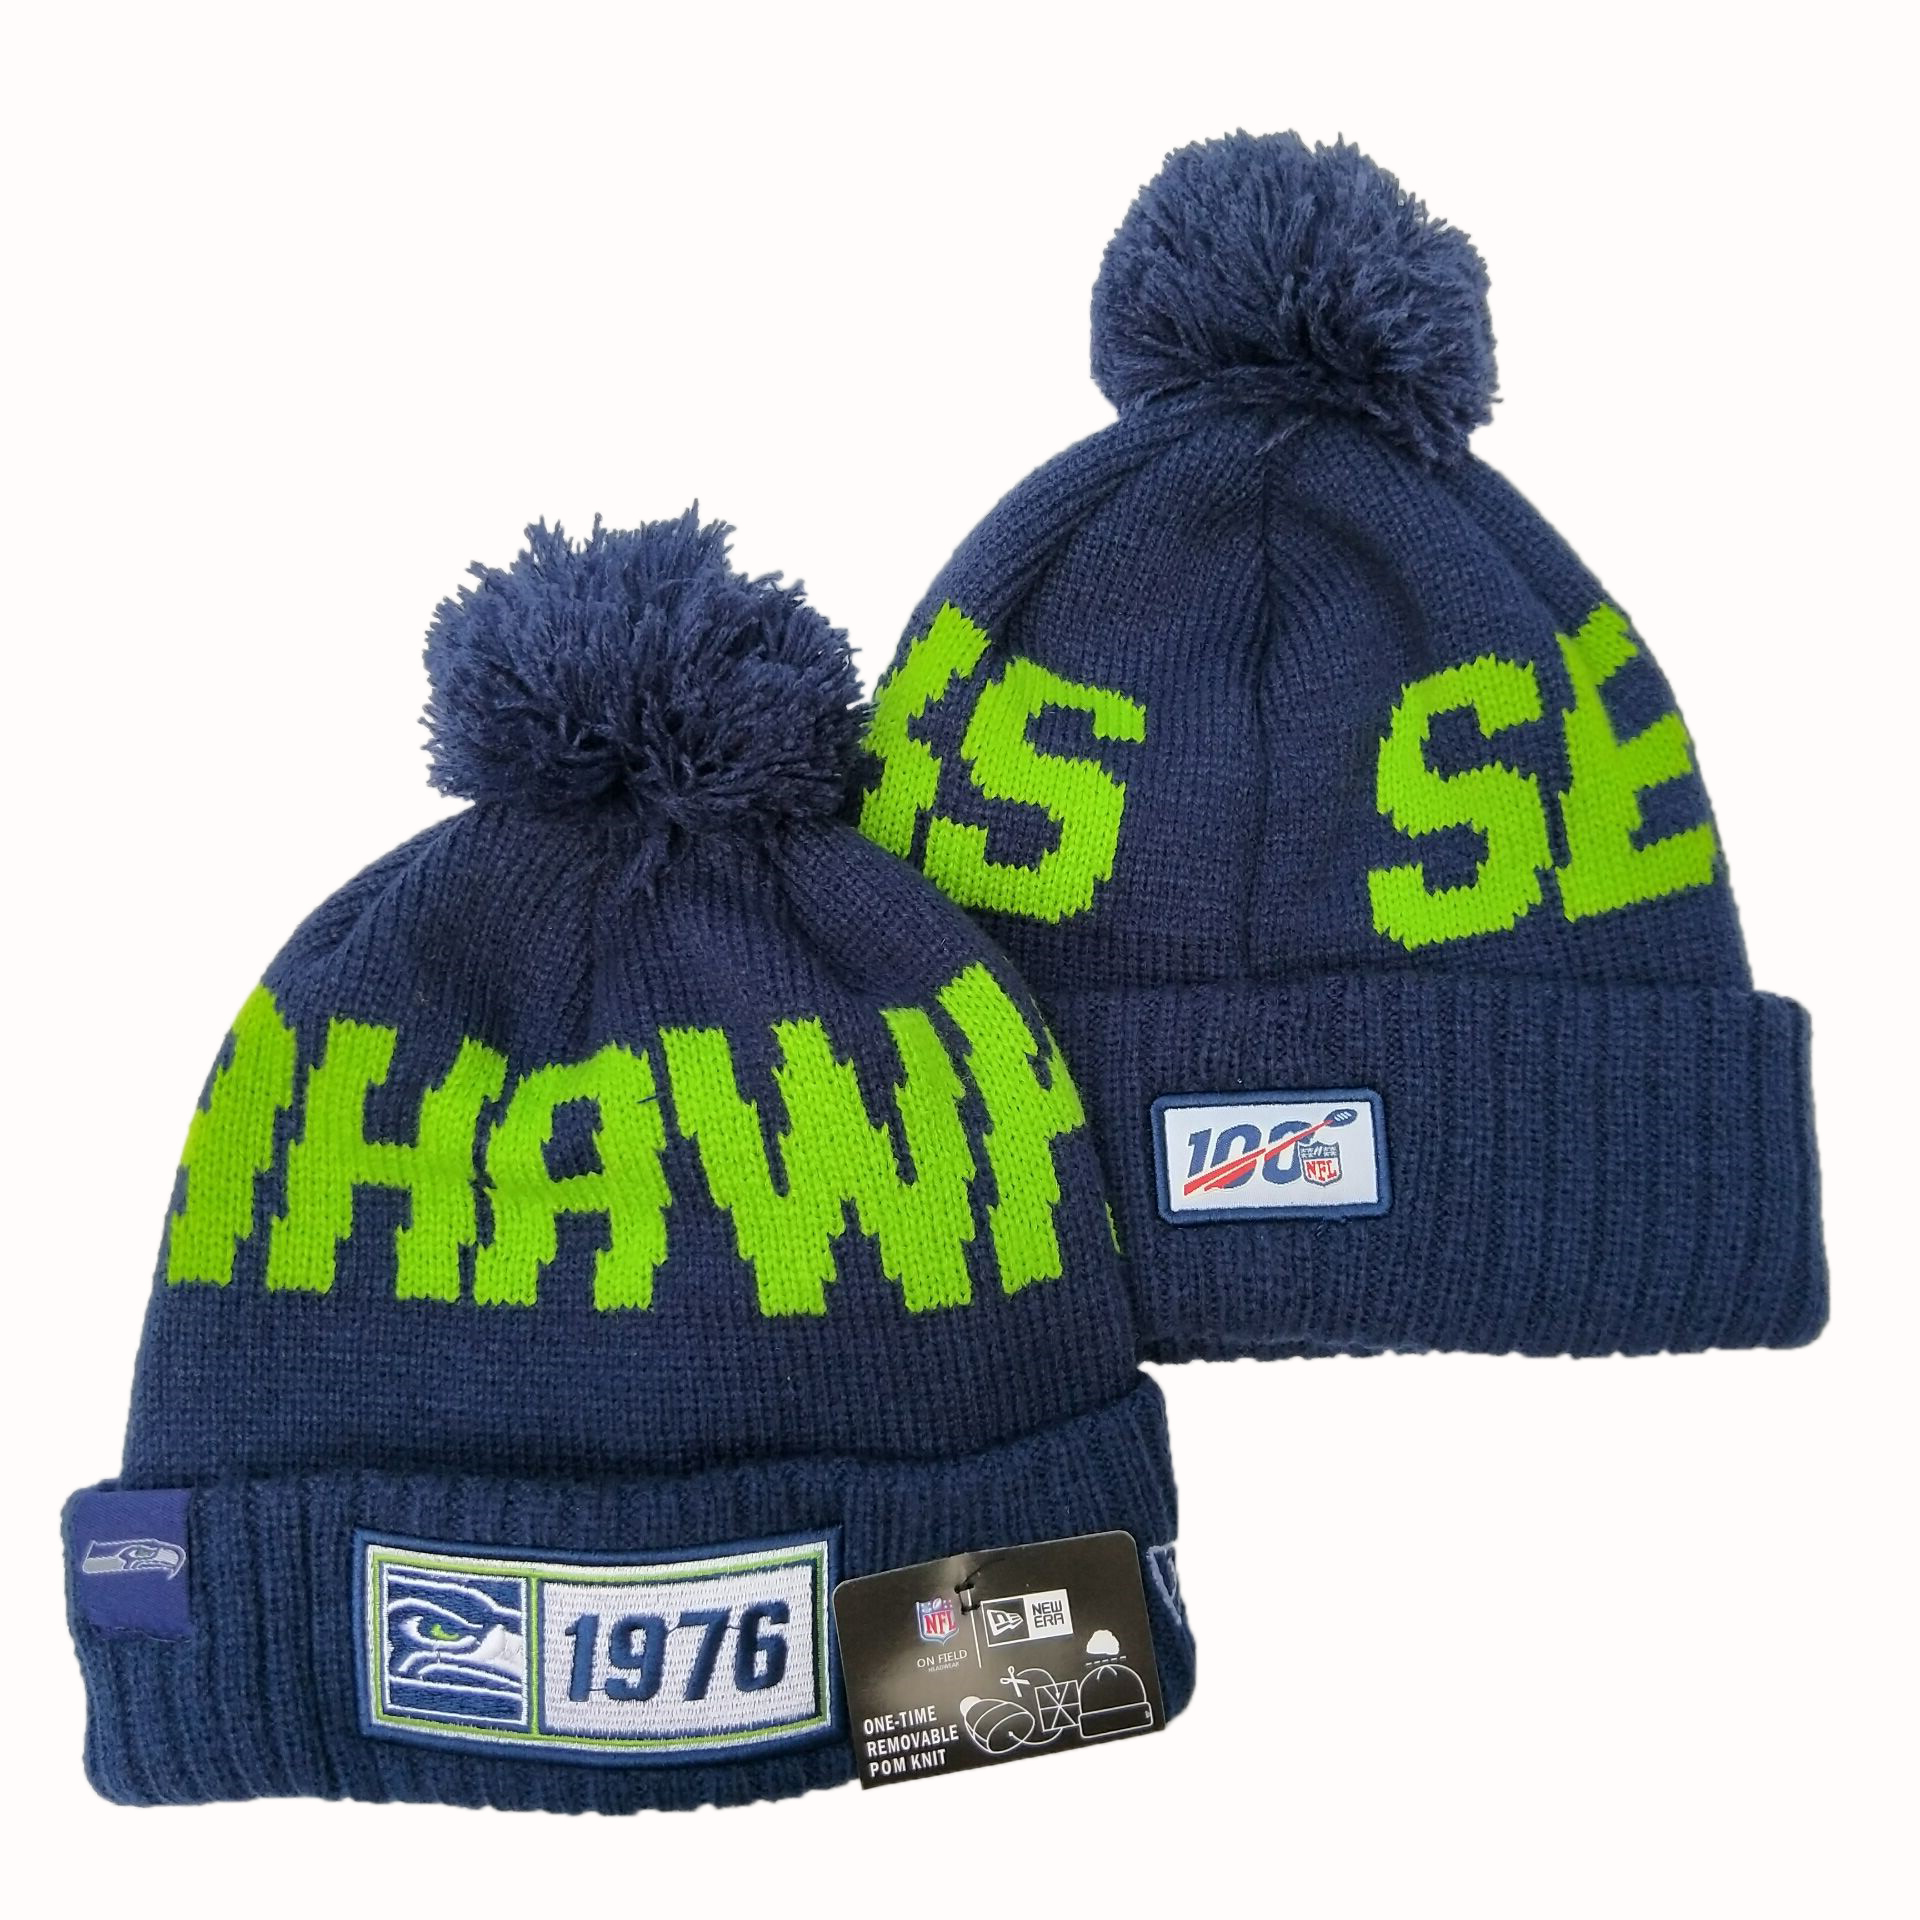 NFL Seattle Seahawks New Era 2019 Sideline Road Reverse Sport Knit Hats 050